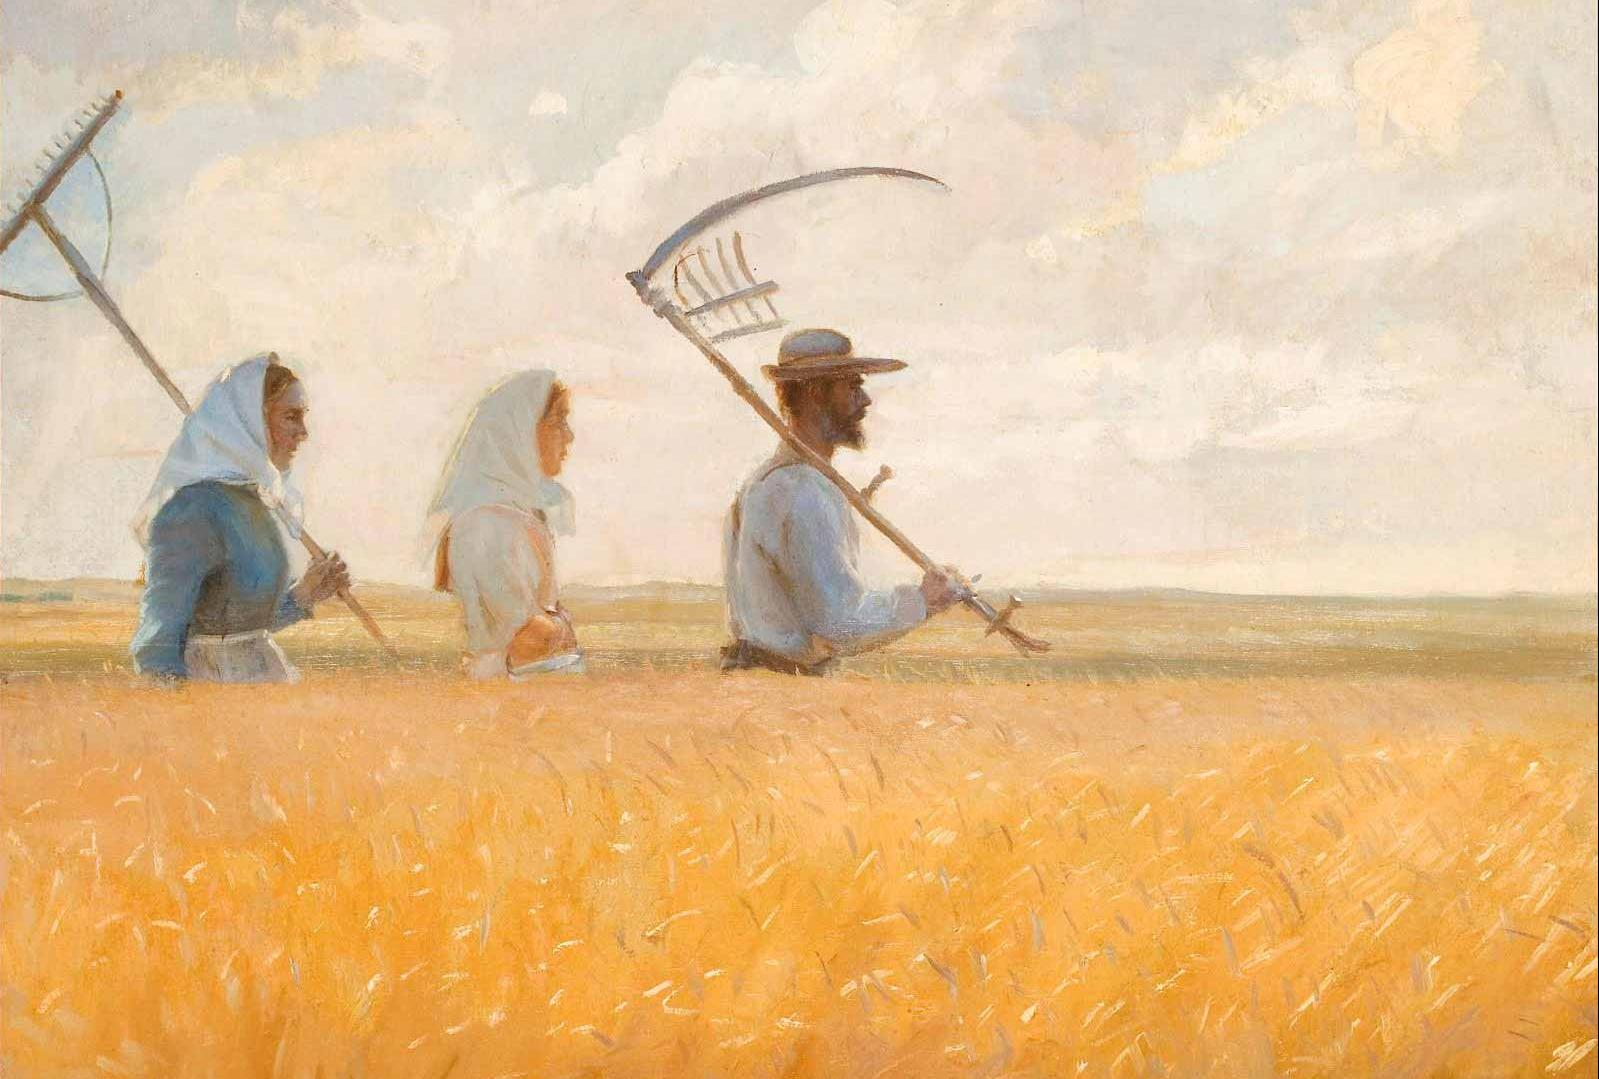 anna-ancher-harvest-time-painting-edit.jpg